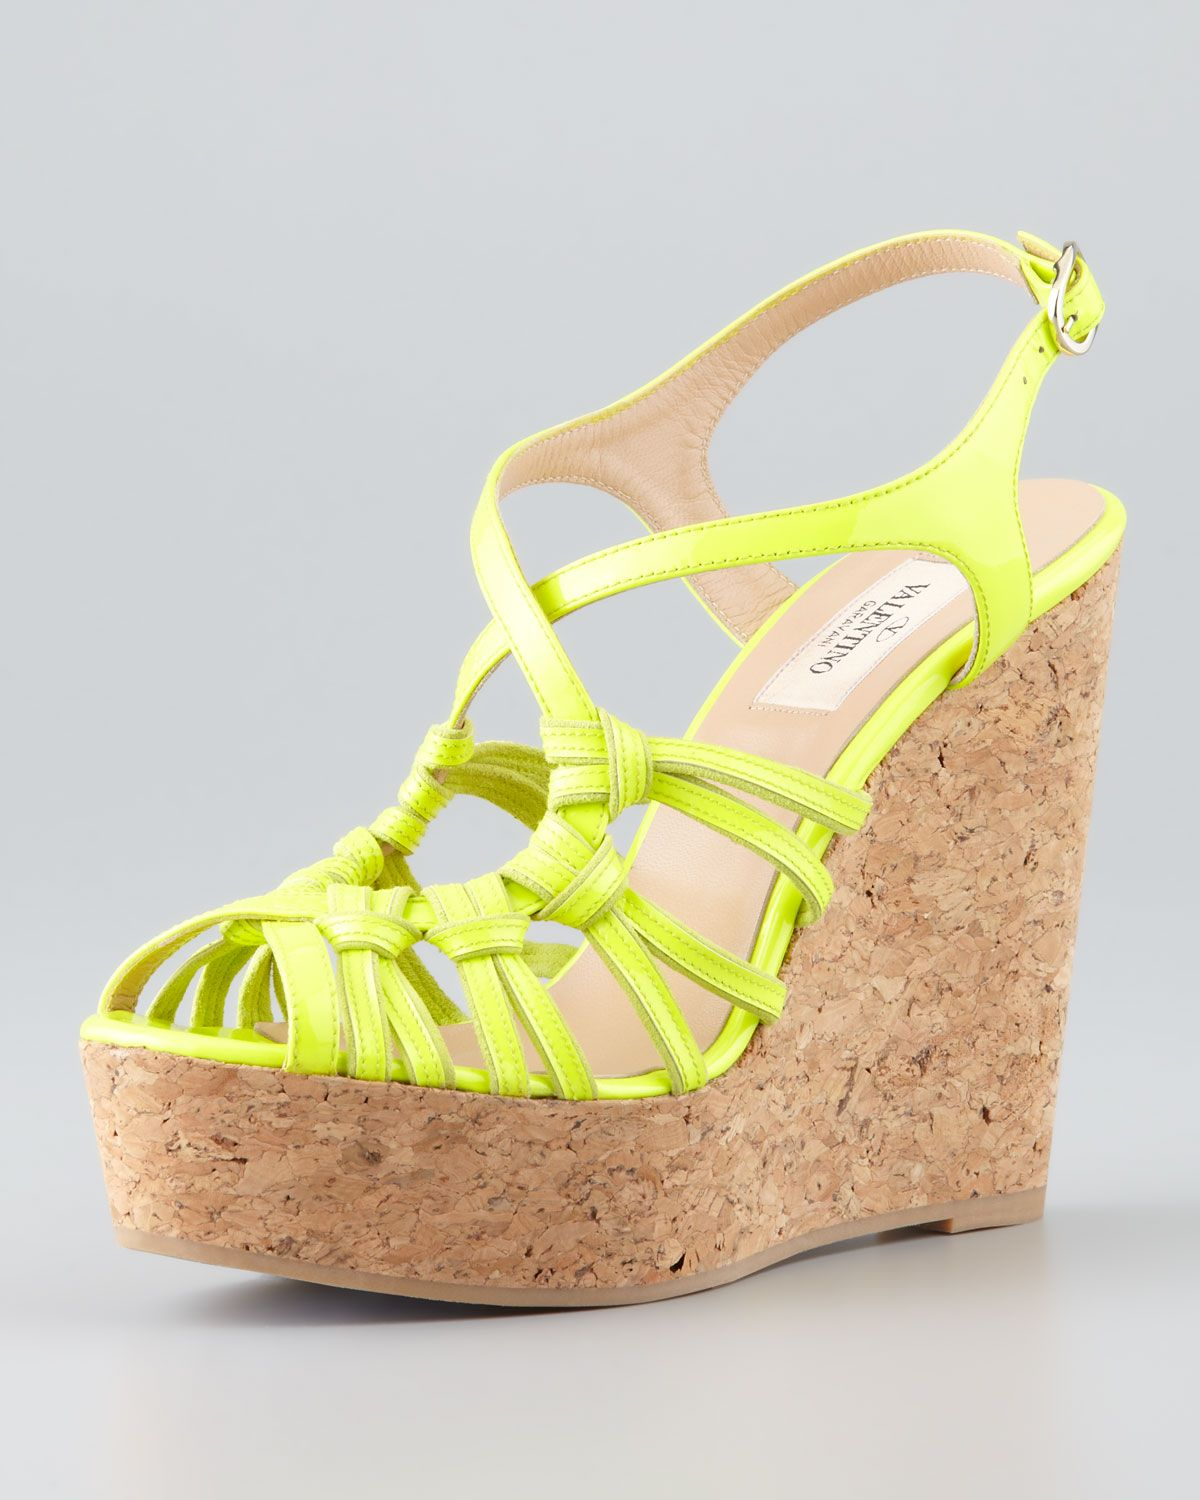 3a0281cf132 Valentino Strappy Patent Cork Wedge Sandal Yellow in Yellow